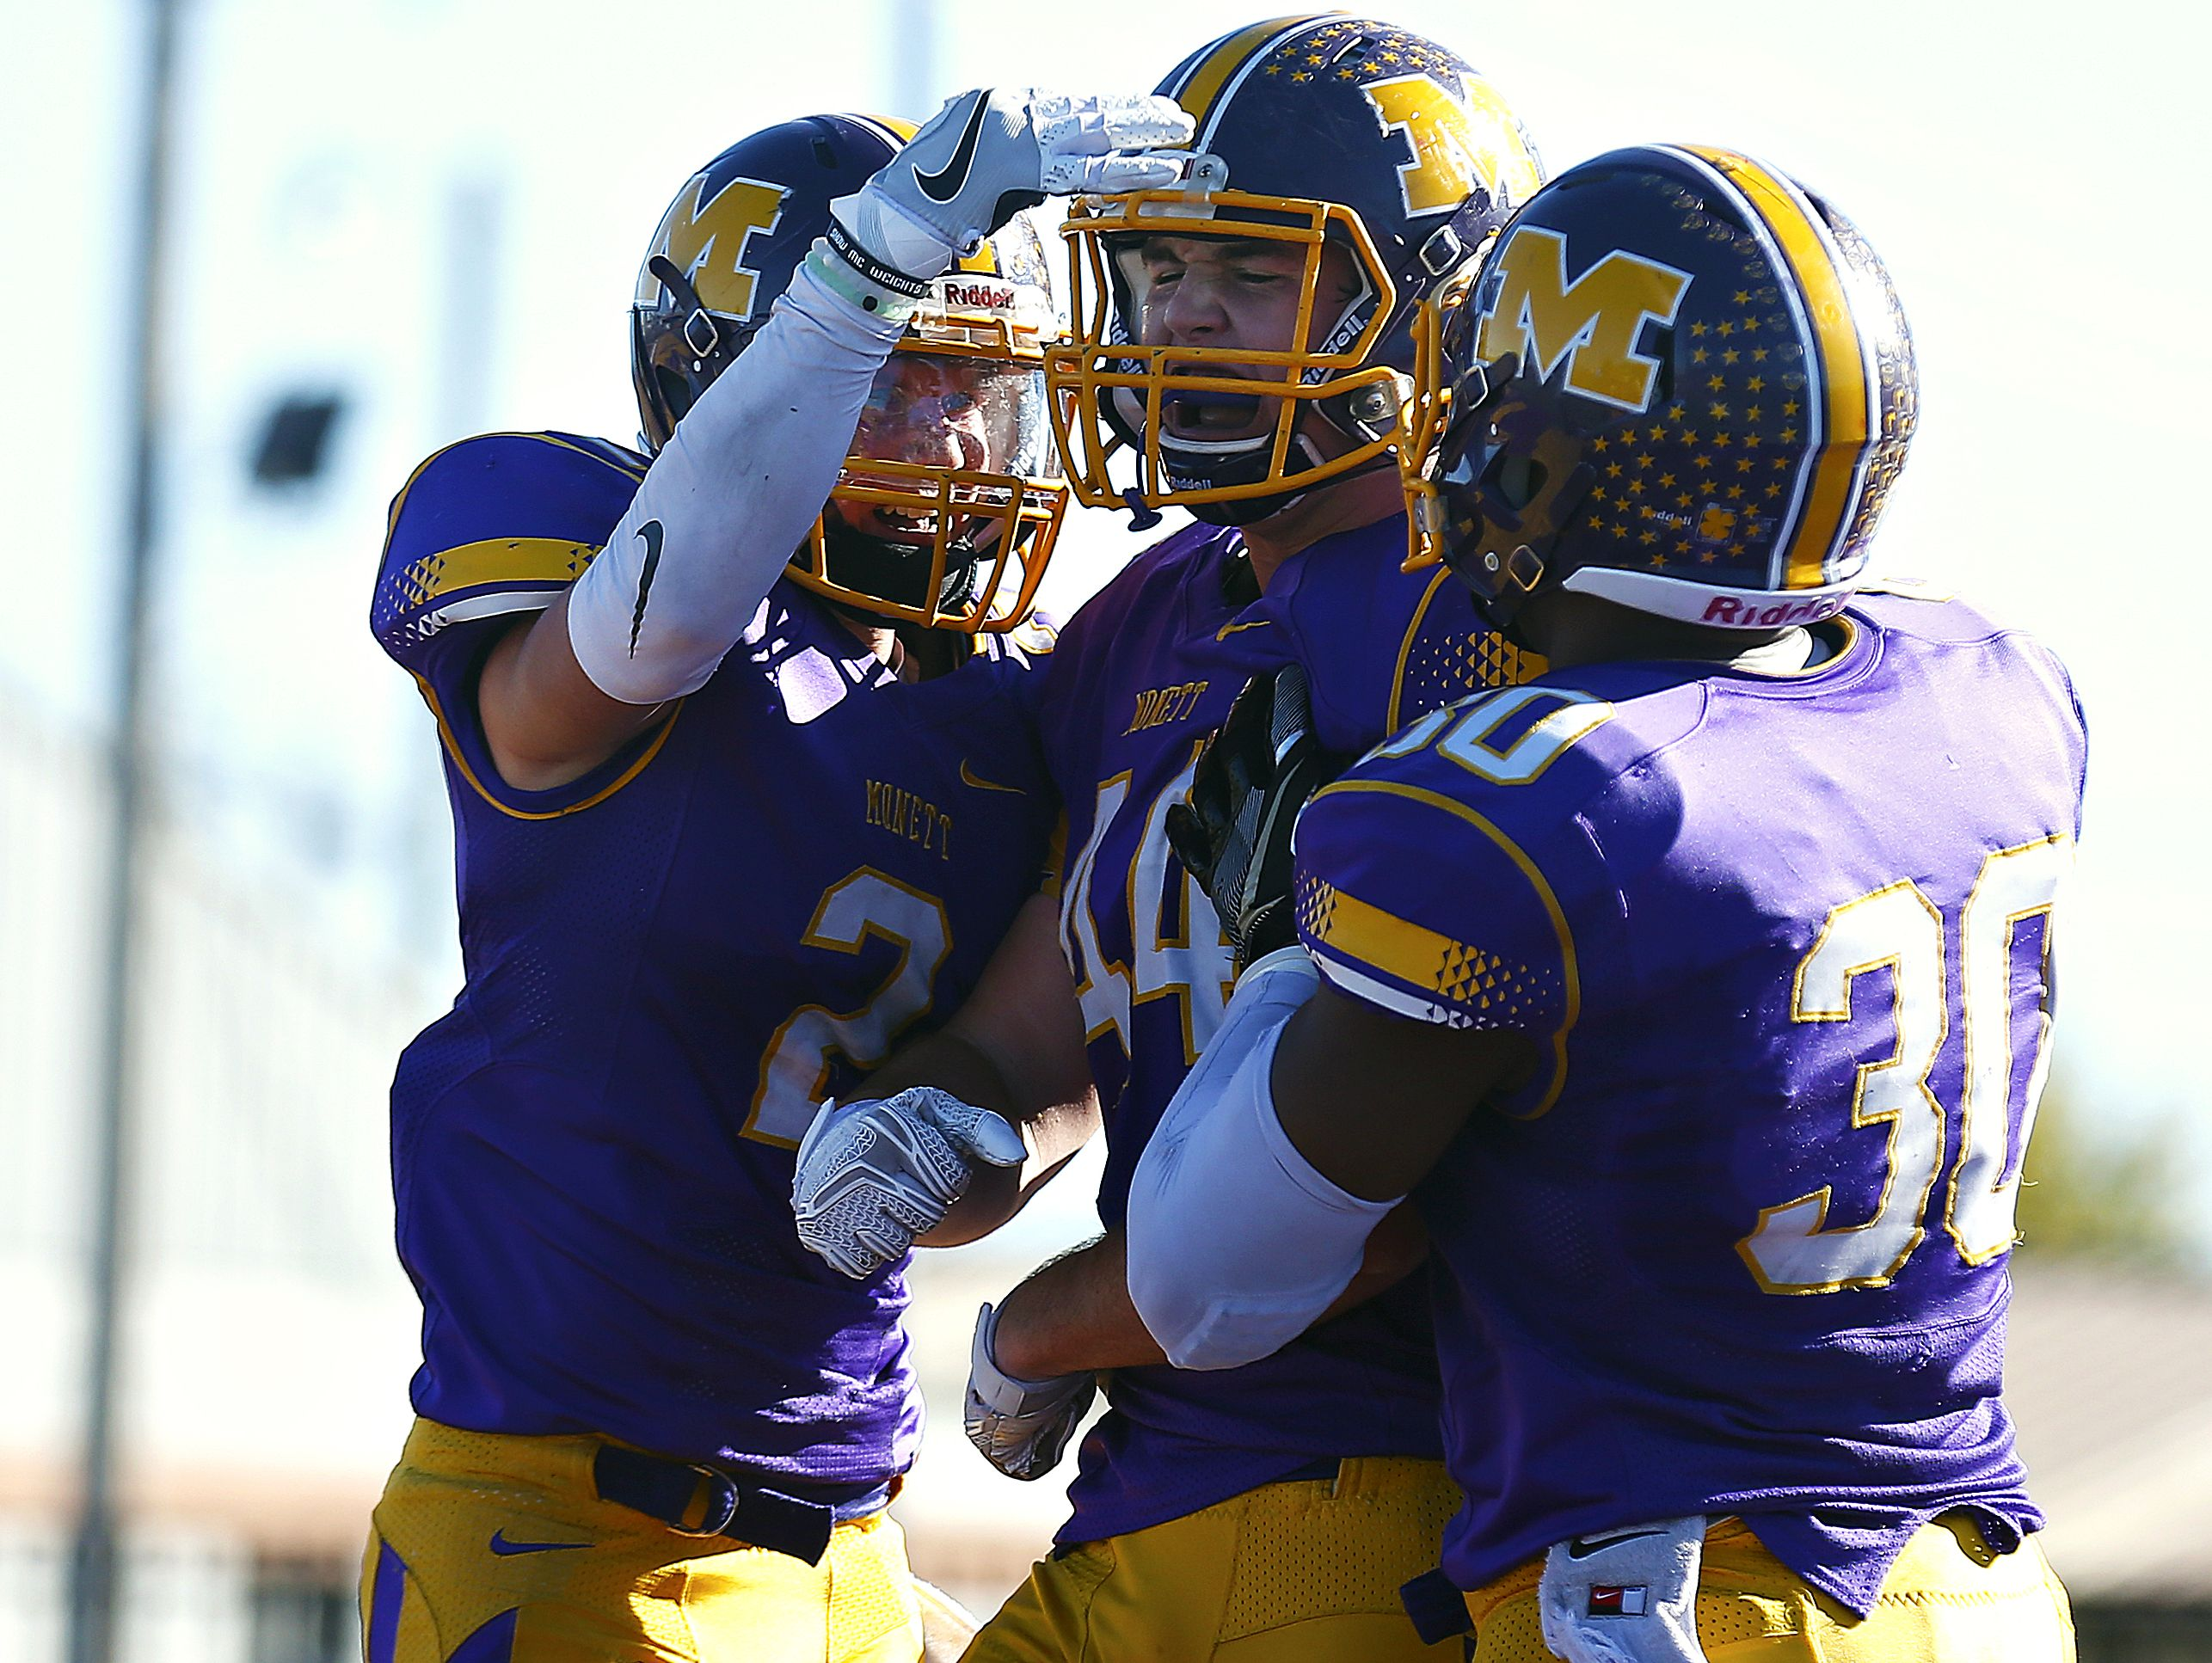 Monett High School tight end Alex Turner (44) celebrates with his teammates after scoring a touchdown during the second quarter of the Class 3 quarterfinal playoff game against Owensville High School at Burl Fowler Stadium in Monett.